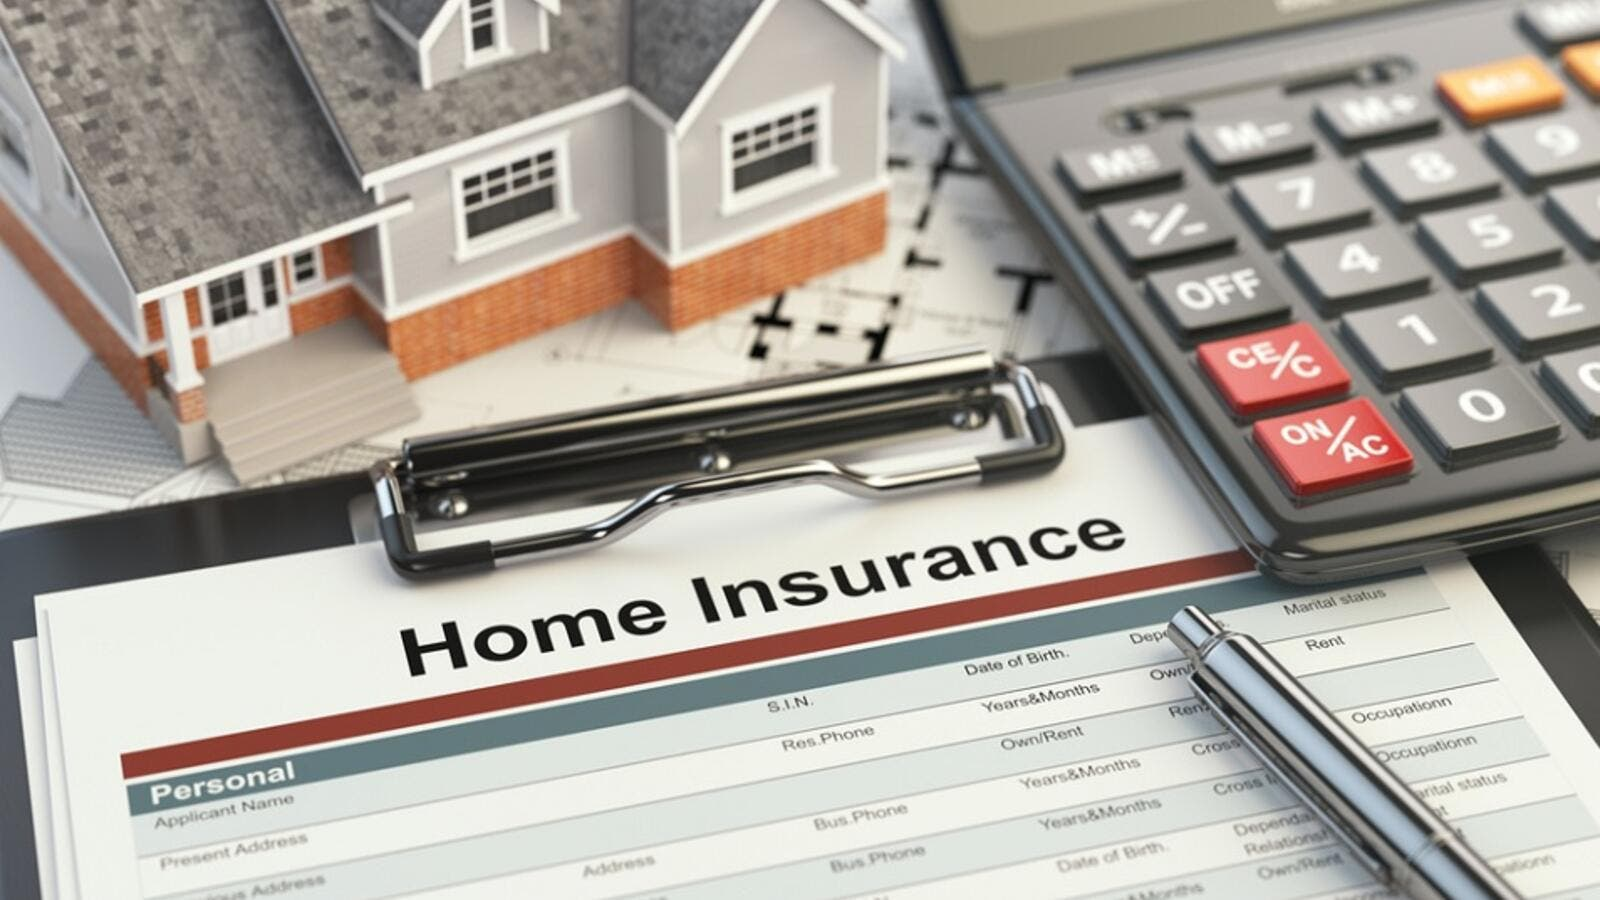 58 per cent of home insurance claims came from damage or loss of personal belongings, with 70 per cent of them made on damages, and 30 per cent on loss of personal belongings.